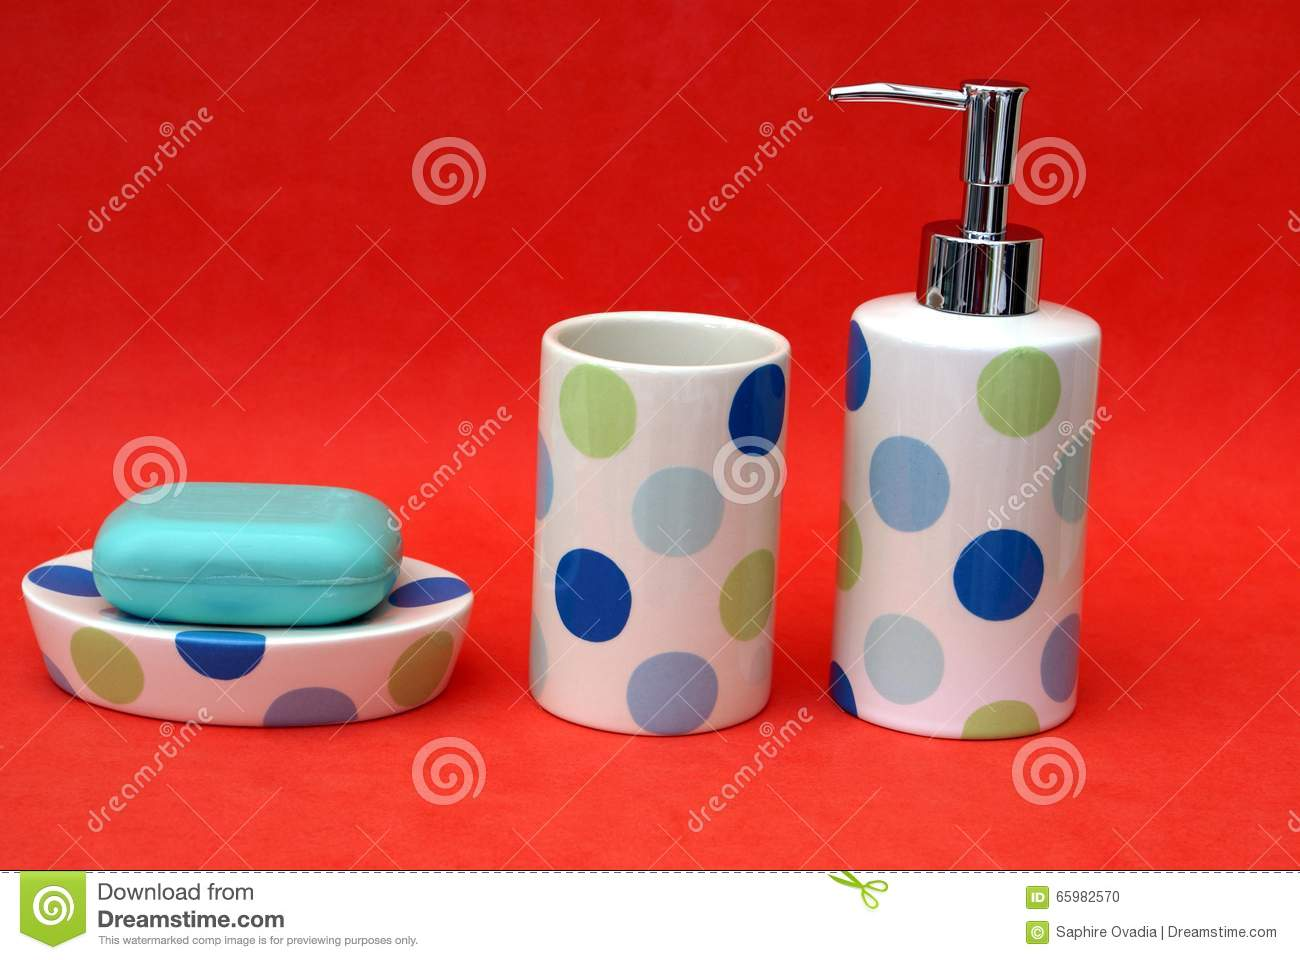 Royalty Free Stock Photo. Download Bathroom Toiletries.